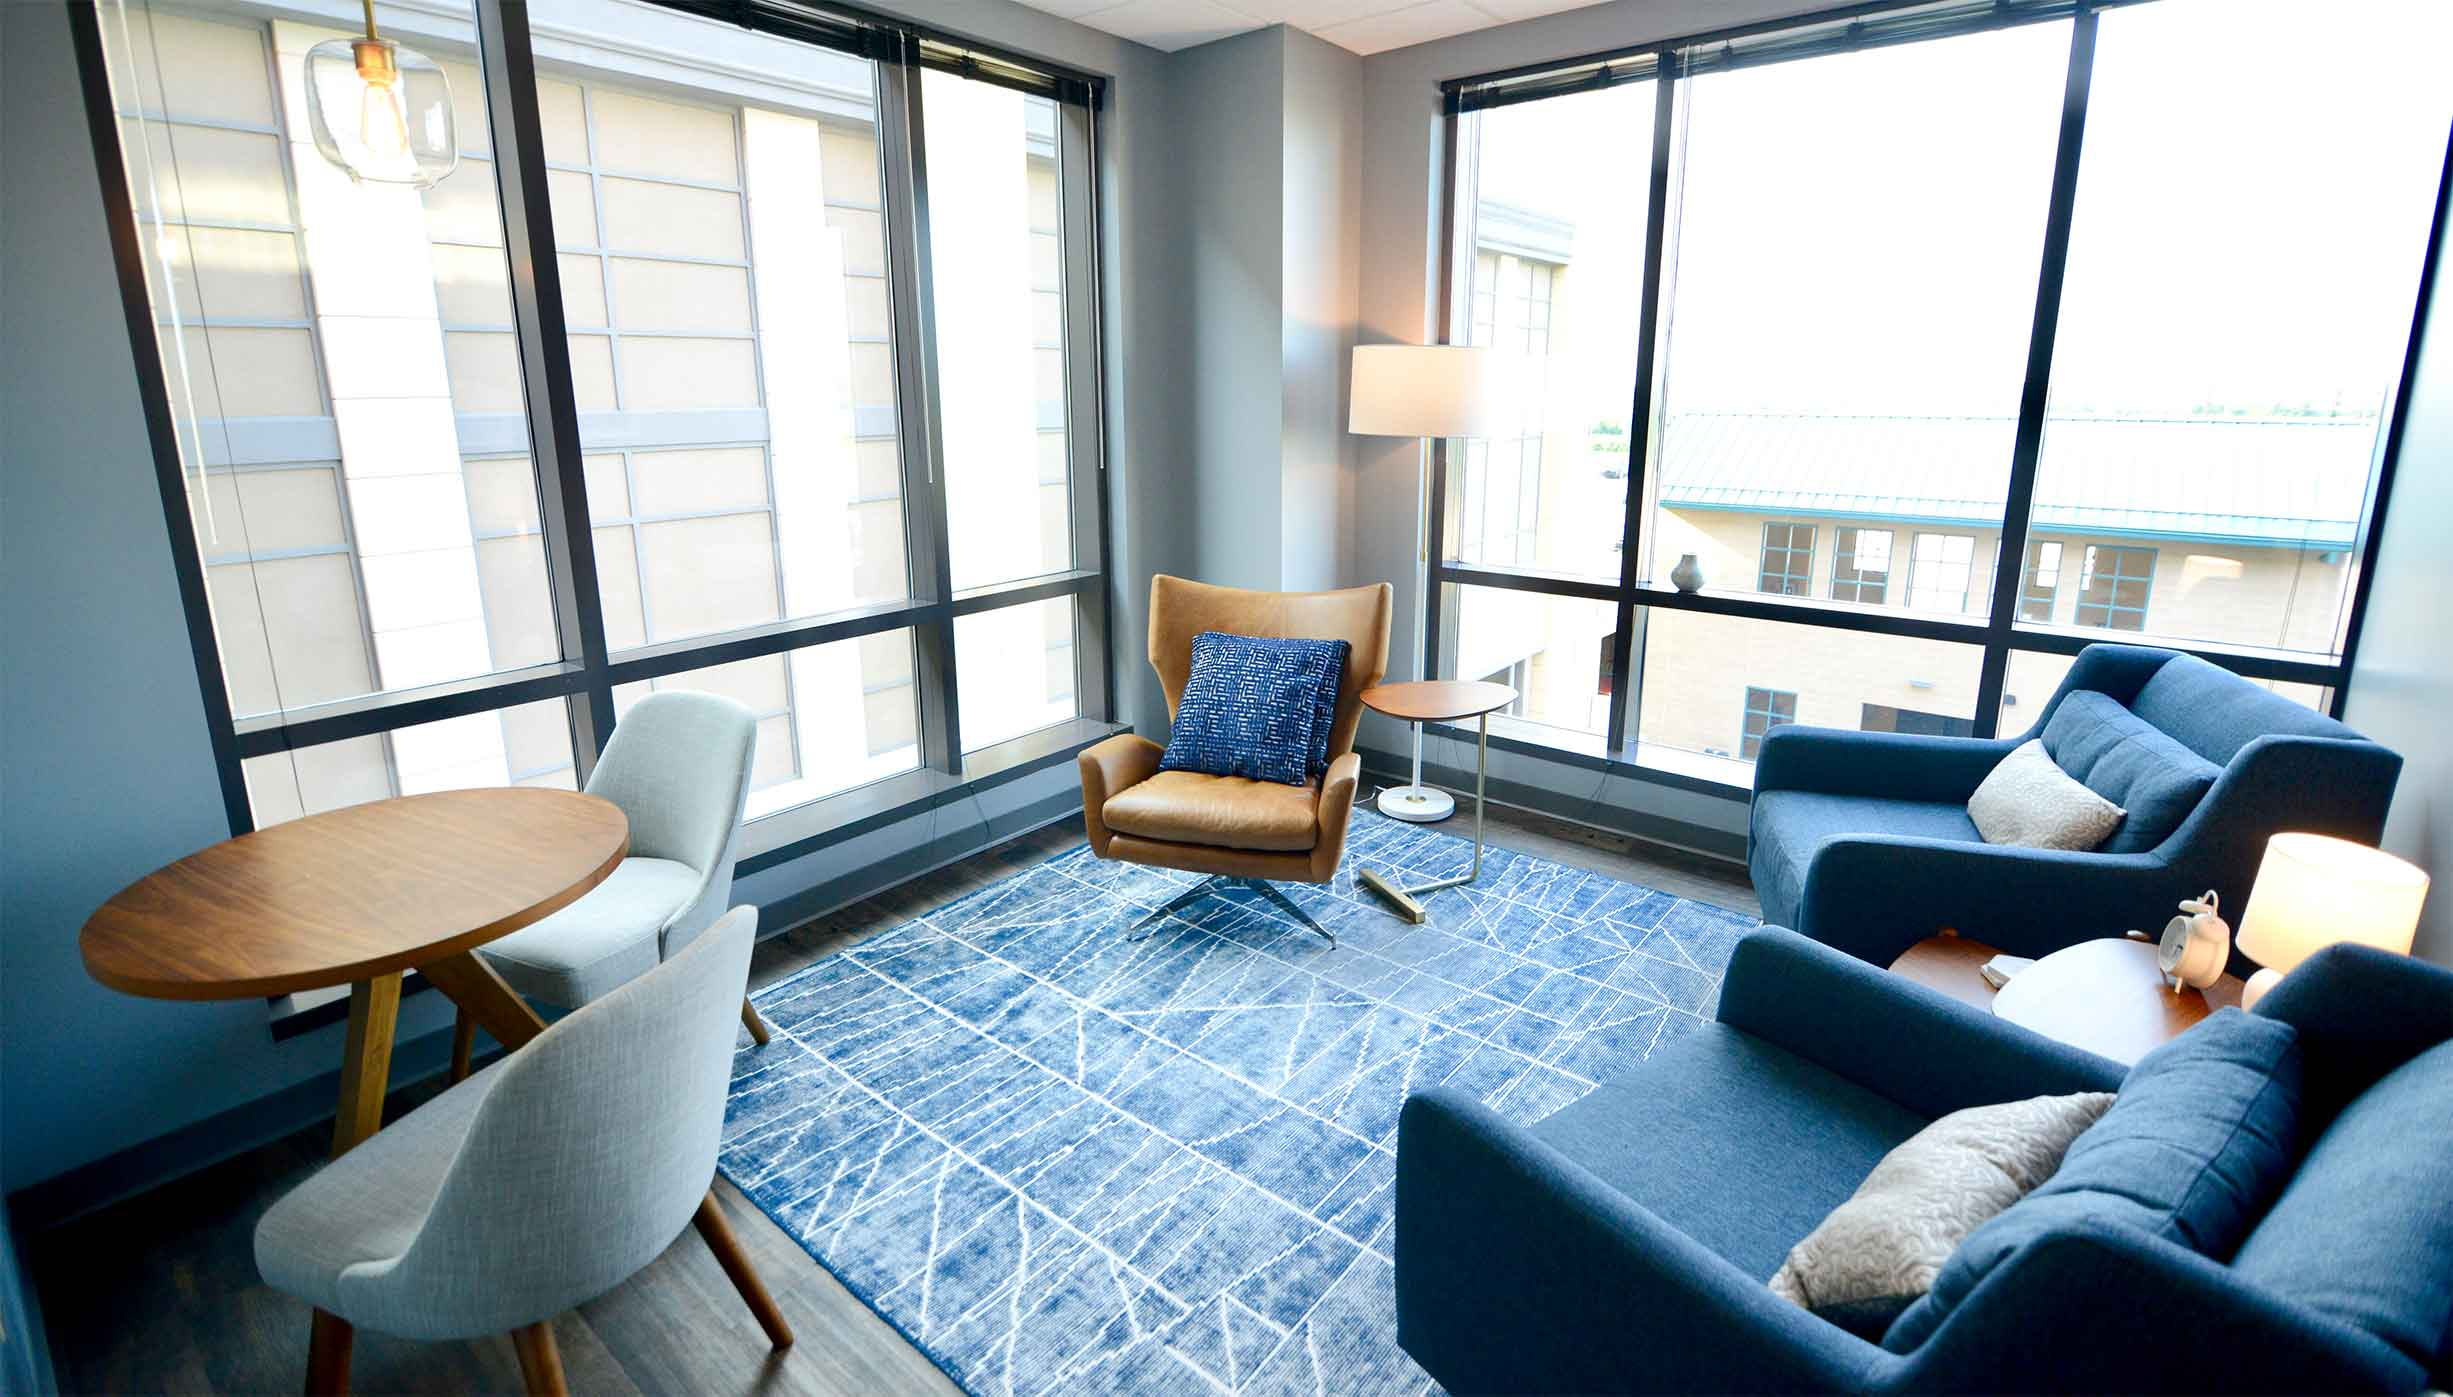 Brightly lit room with large windows and a welcoming setting with plush chairs and tables for a comfortable therapy feel in Liberty Center. ThrivePointe Counseling helps adults and children through therapy in Liberty Township, OH 45069